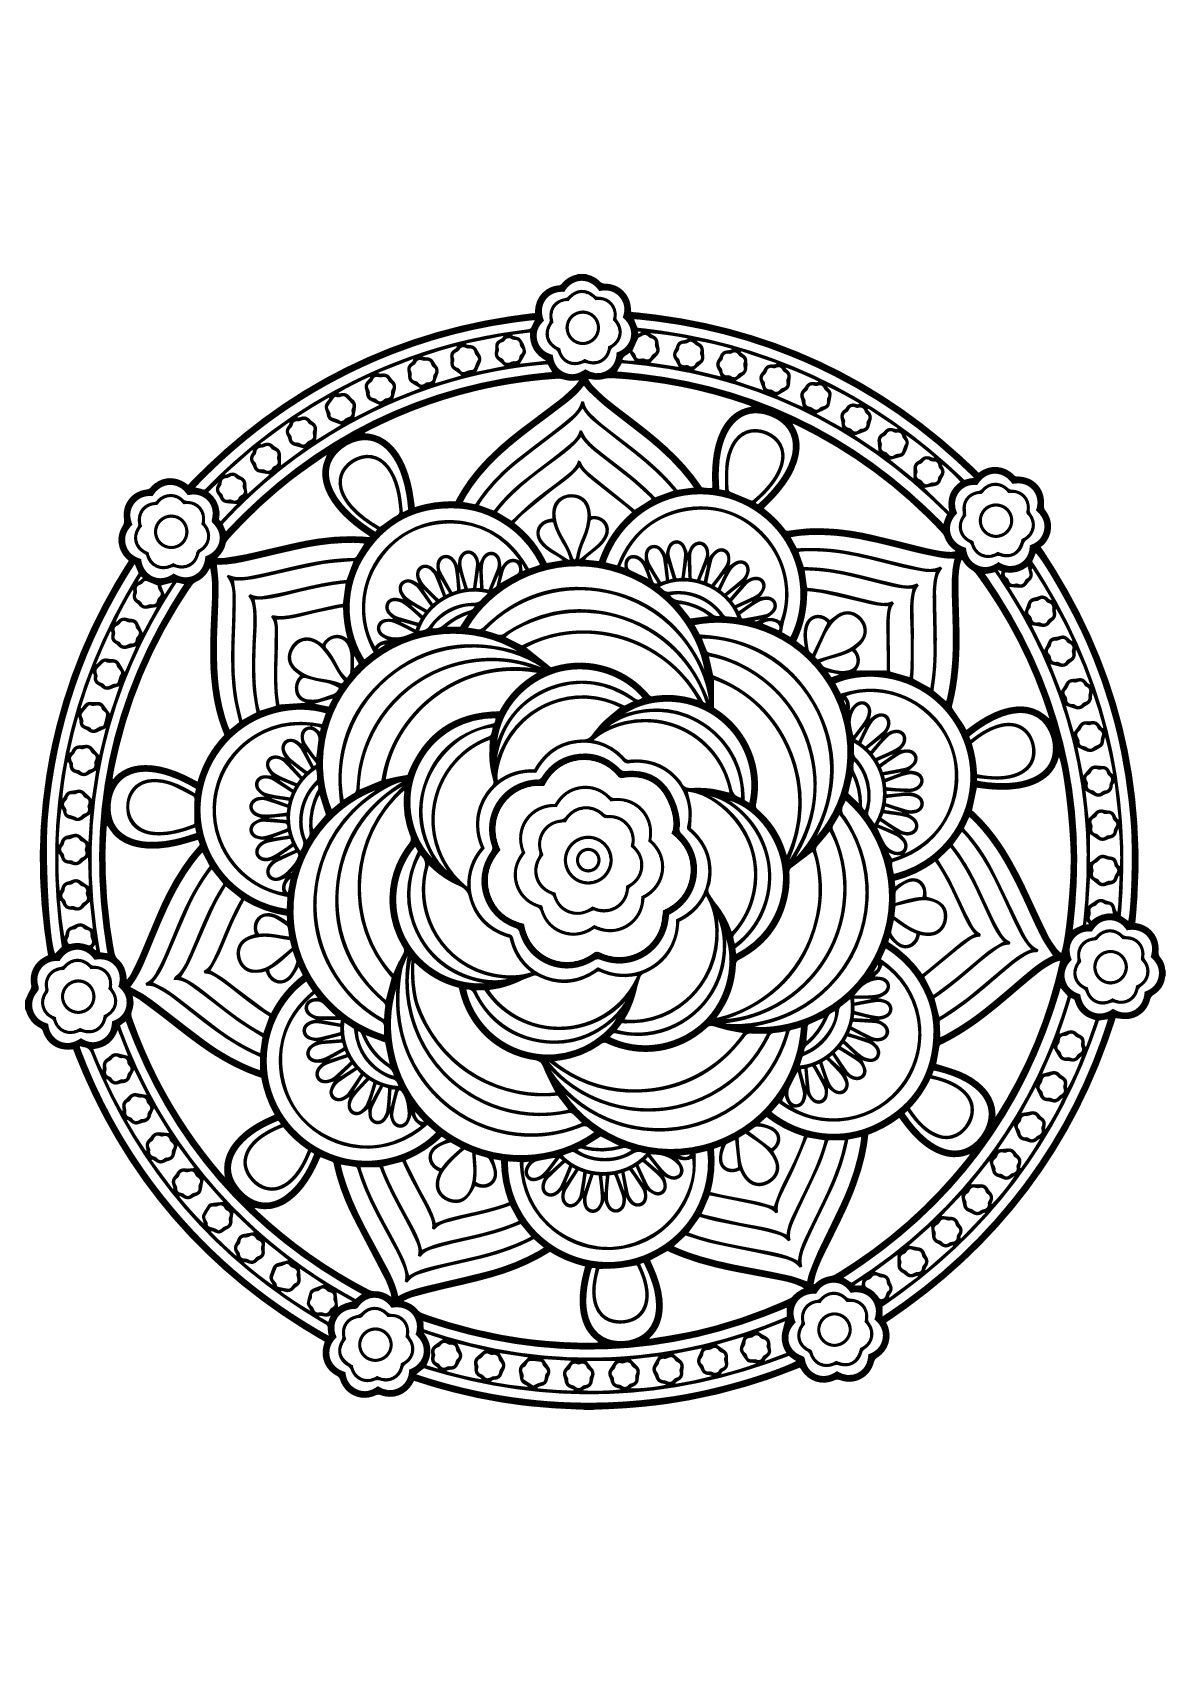 Mandala with floral patterns from Free Coloring book for adults ...